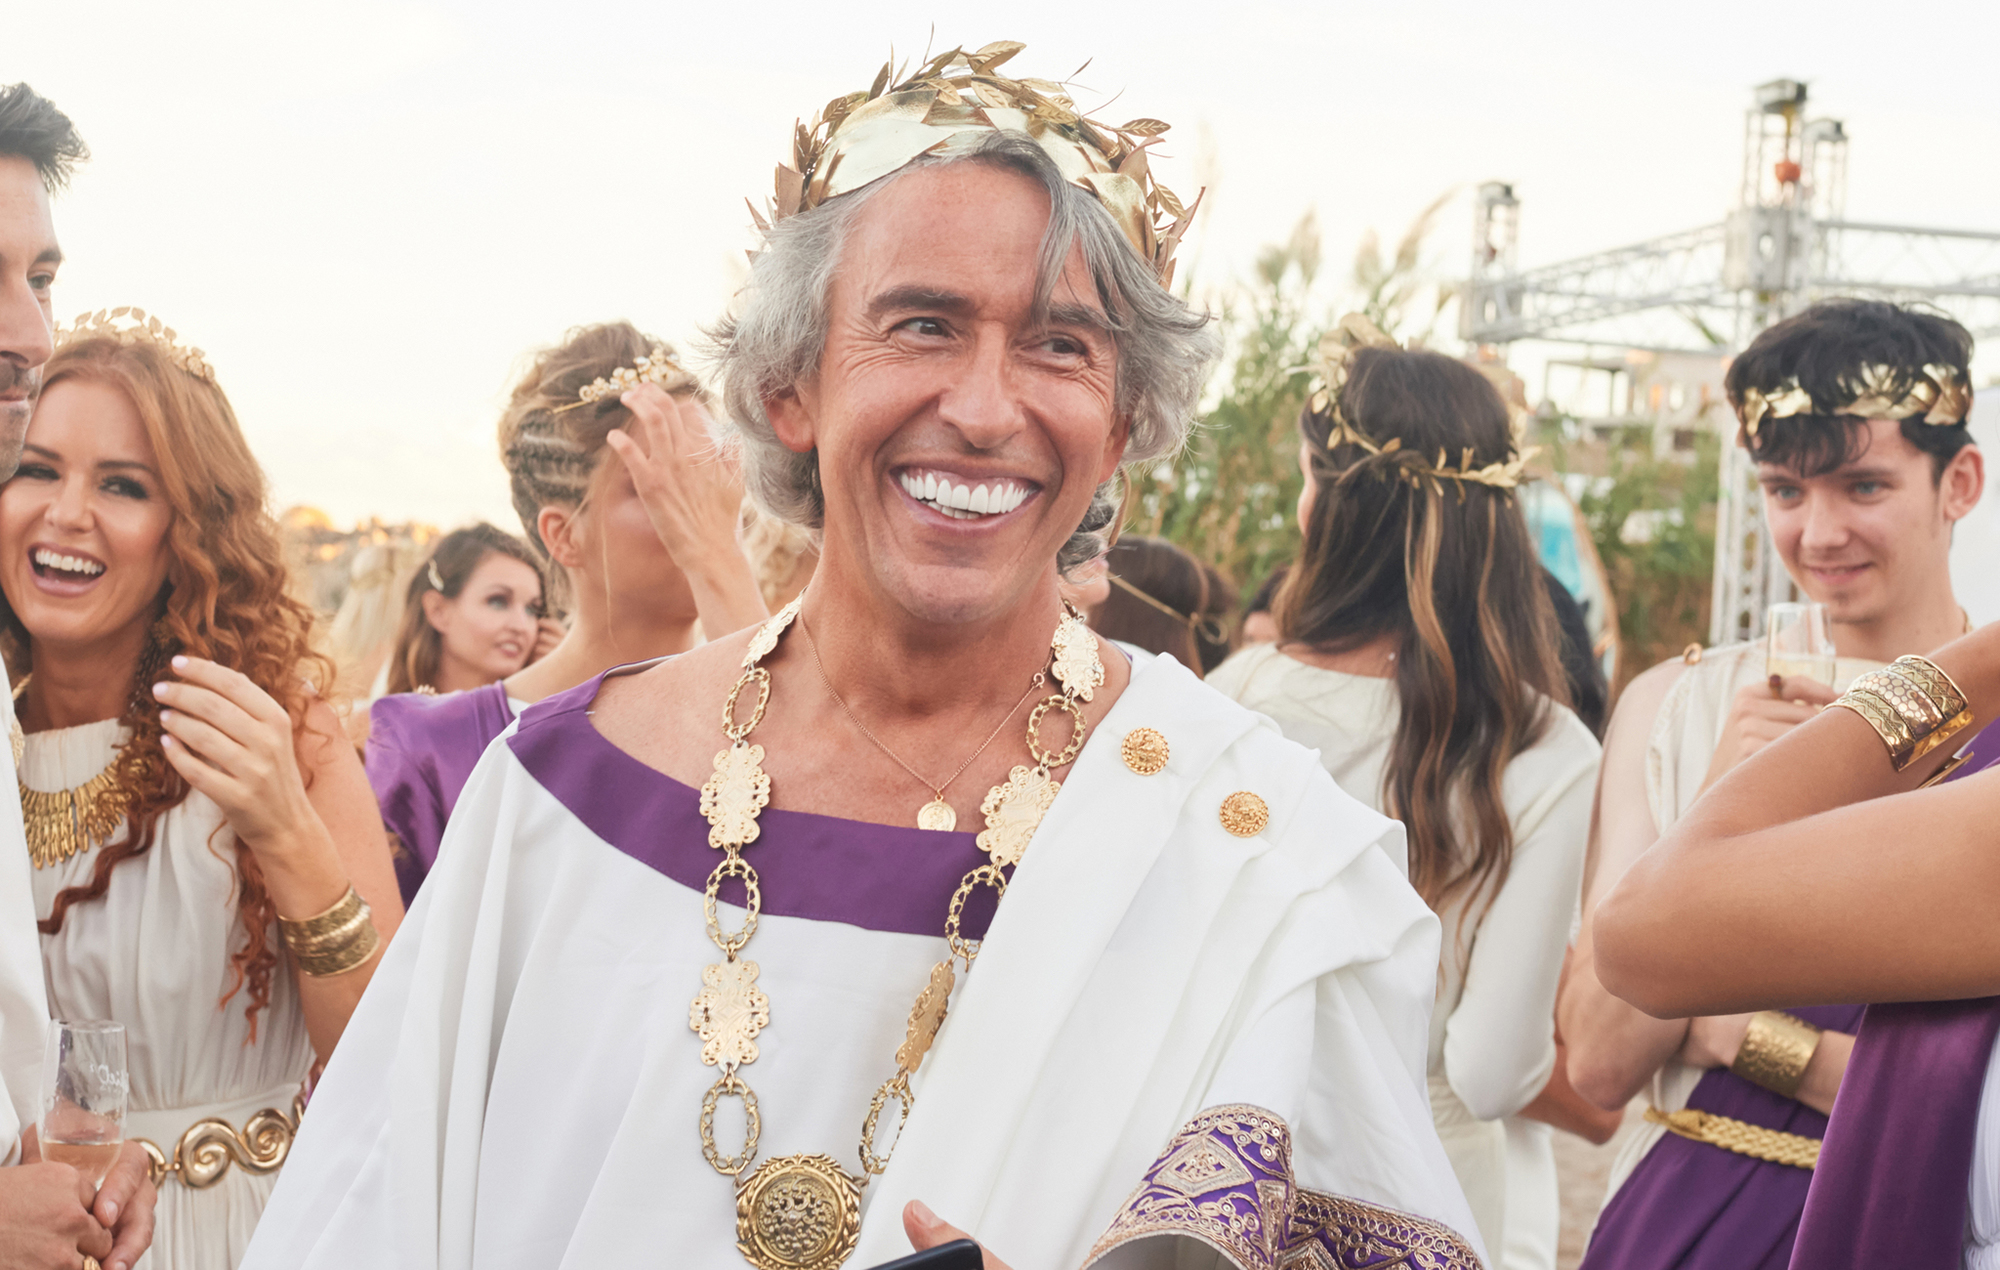 Greed review: Steve Coogan stars in caustic satire of the nouveau riche